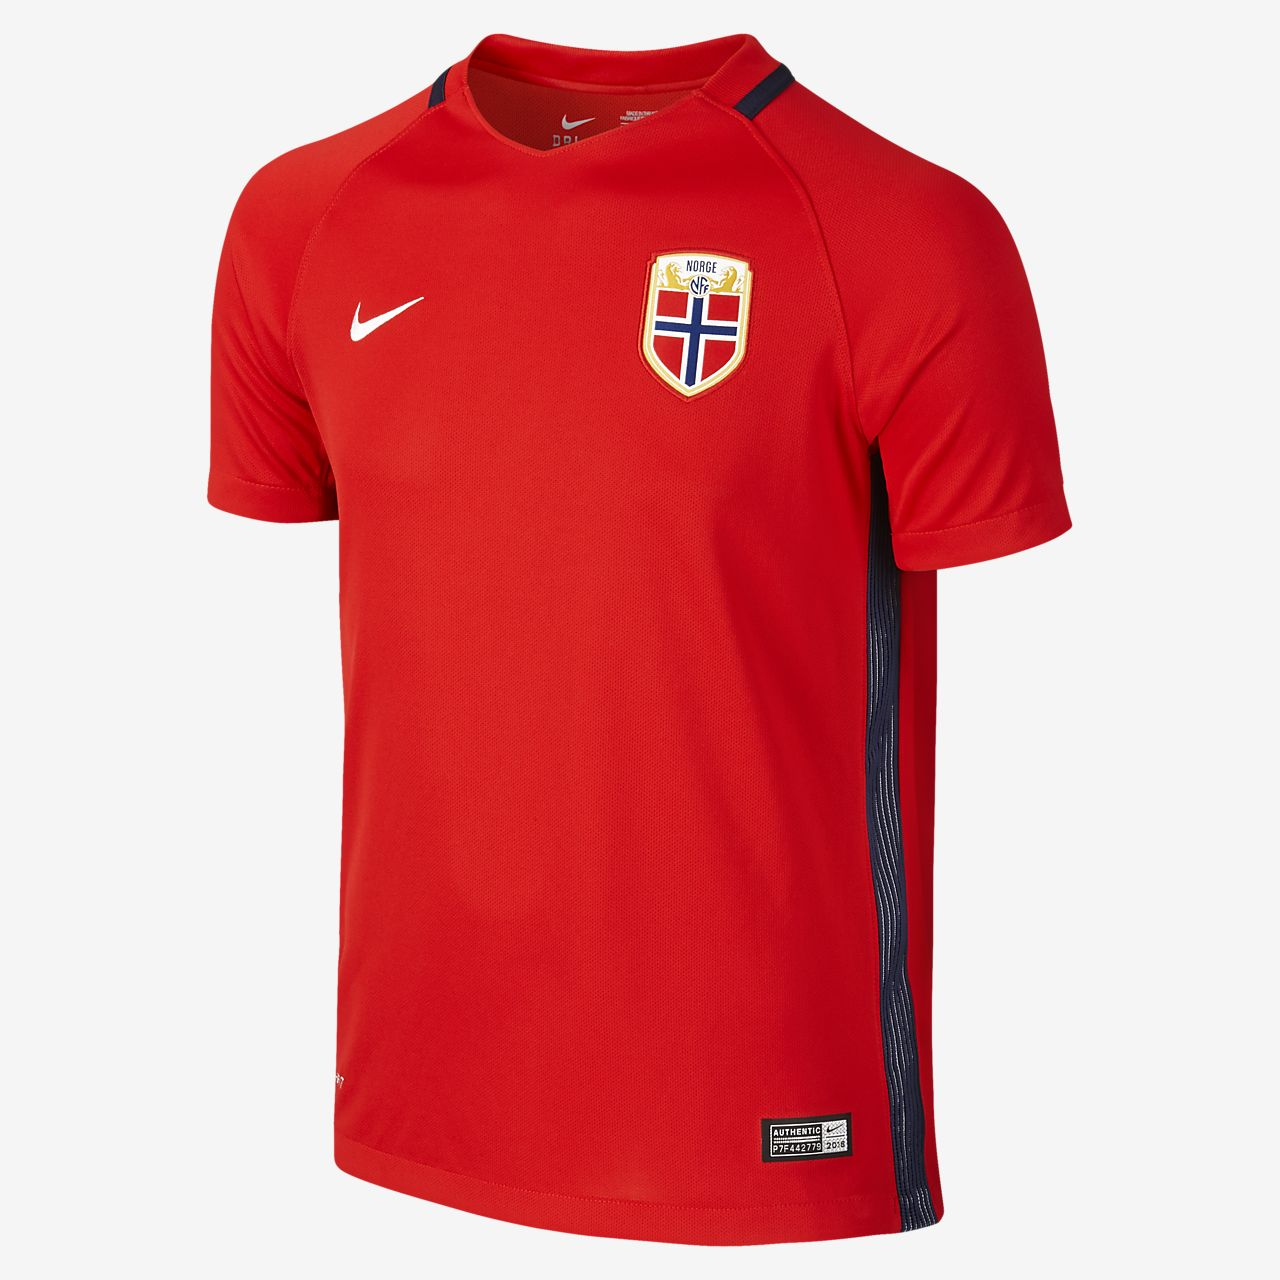 Maillot de football 2016 Norway Stadium Home pour Enfant plus âgé (XS-XL)